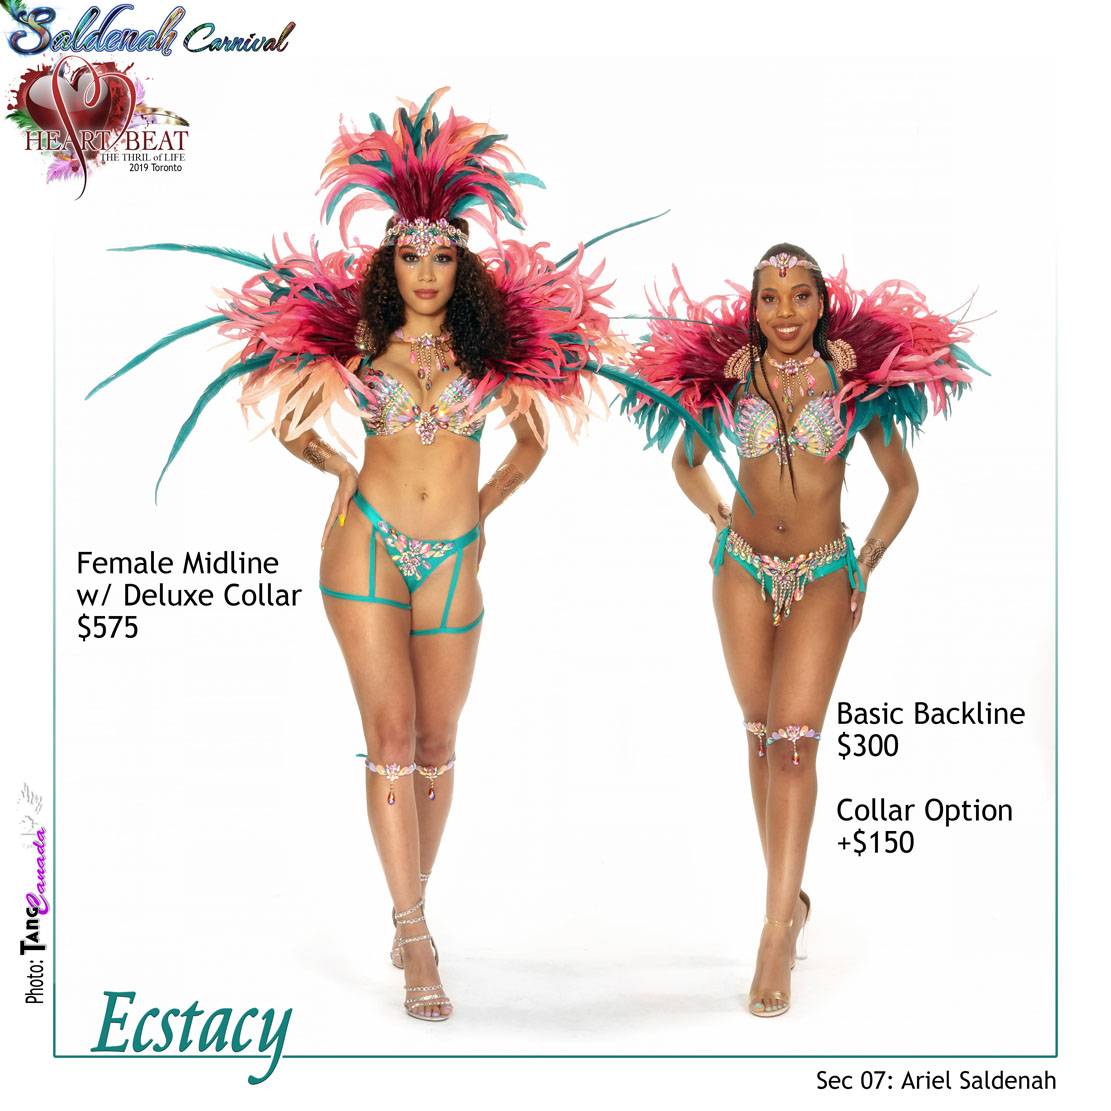 Saldenah Carnival Section 7 Ecstacy